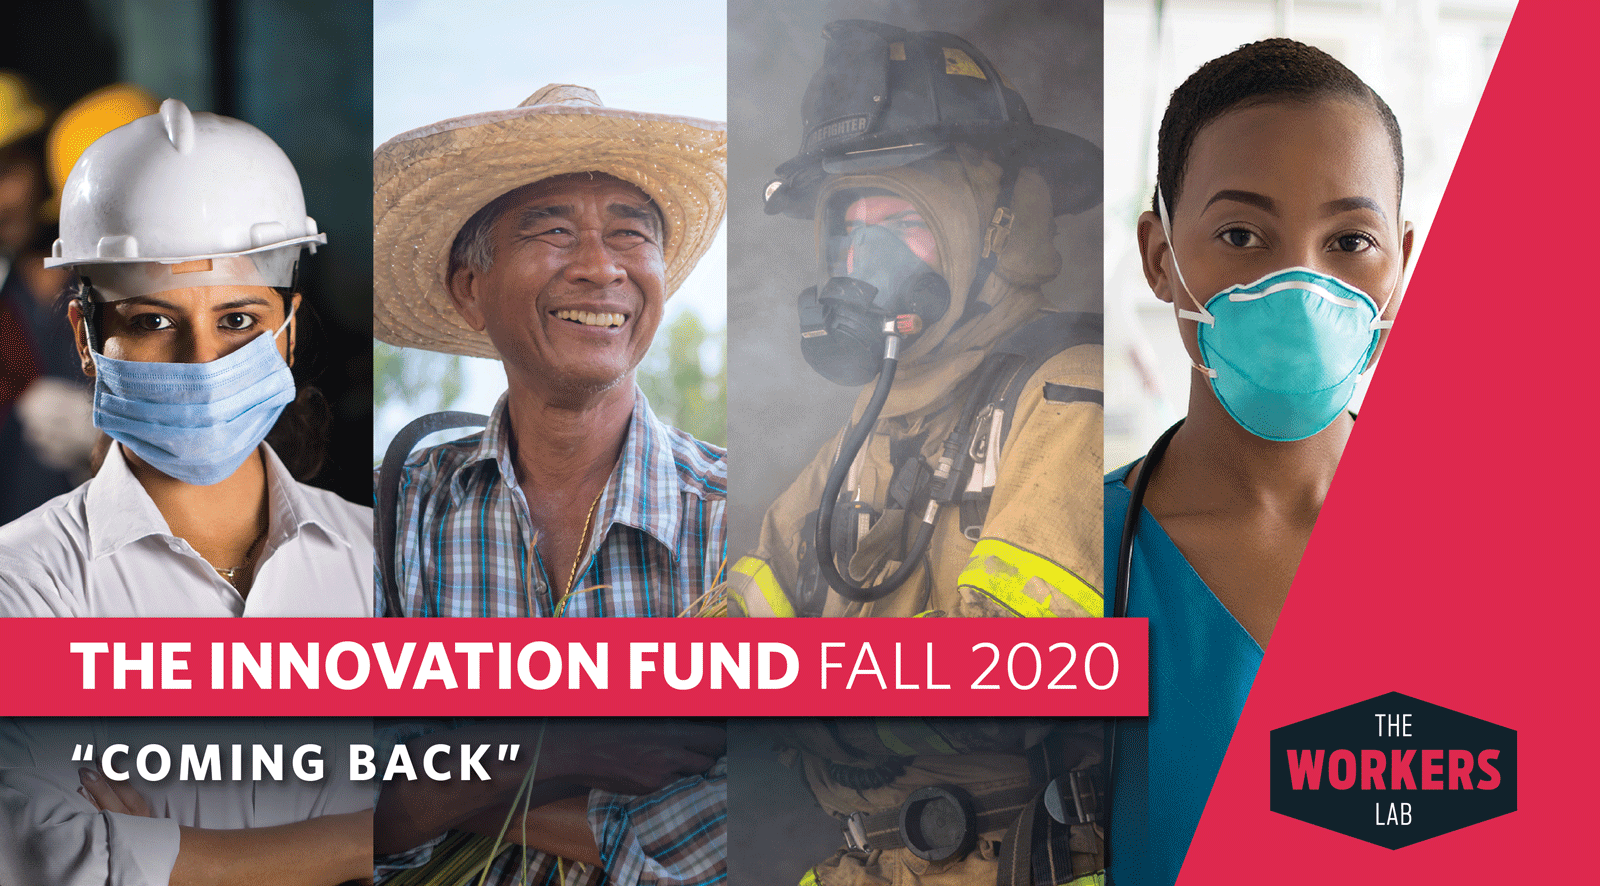 innovation_fund_fall_2020_coming_back_1600x900